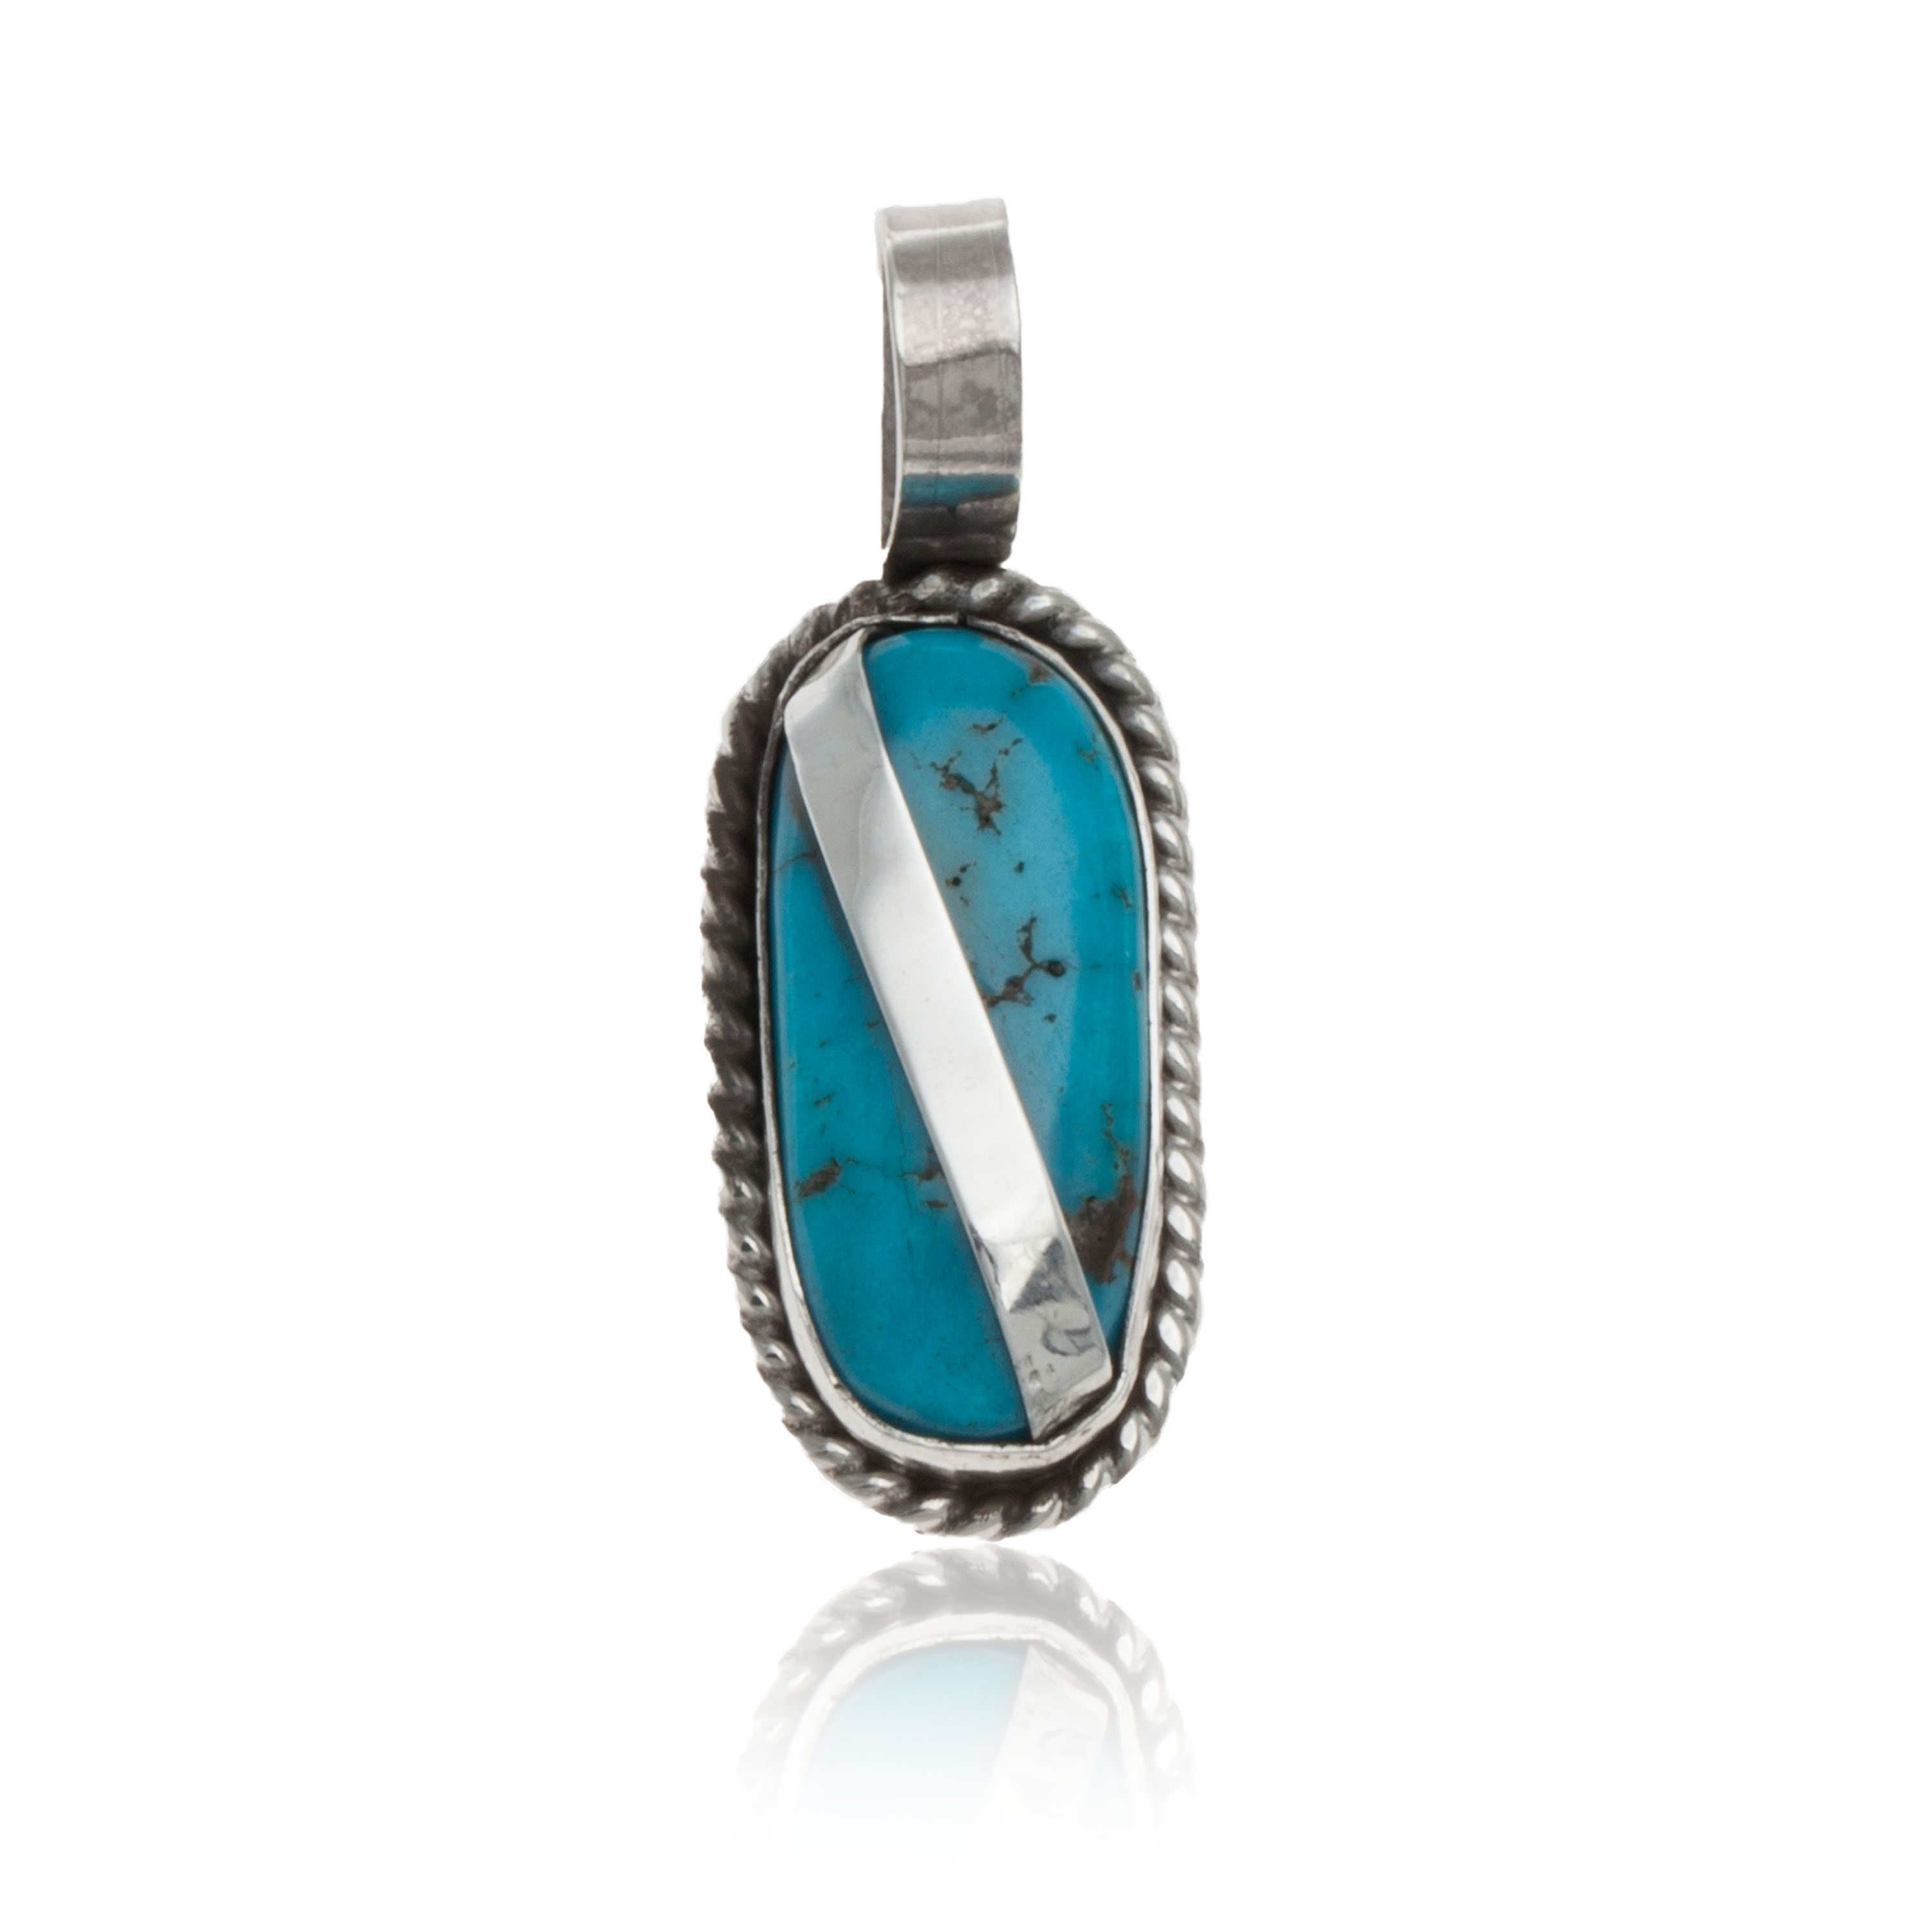 Handmade Certified Authentic Navajo .925 Sterling Silver Natural Turquoise Native American Pendant 12674-100 All Products NB160428214531 12674-100 (by LomaSiiva)